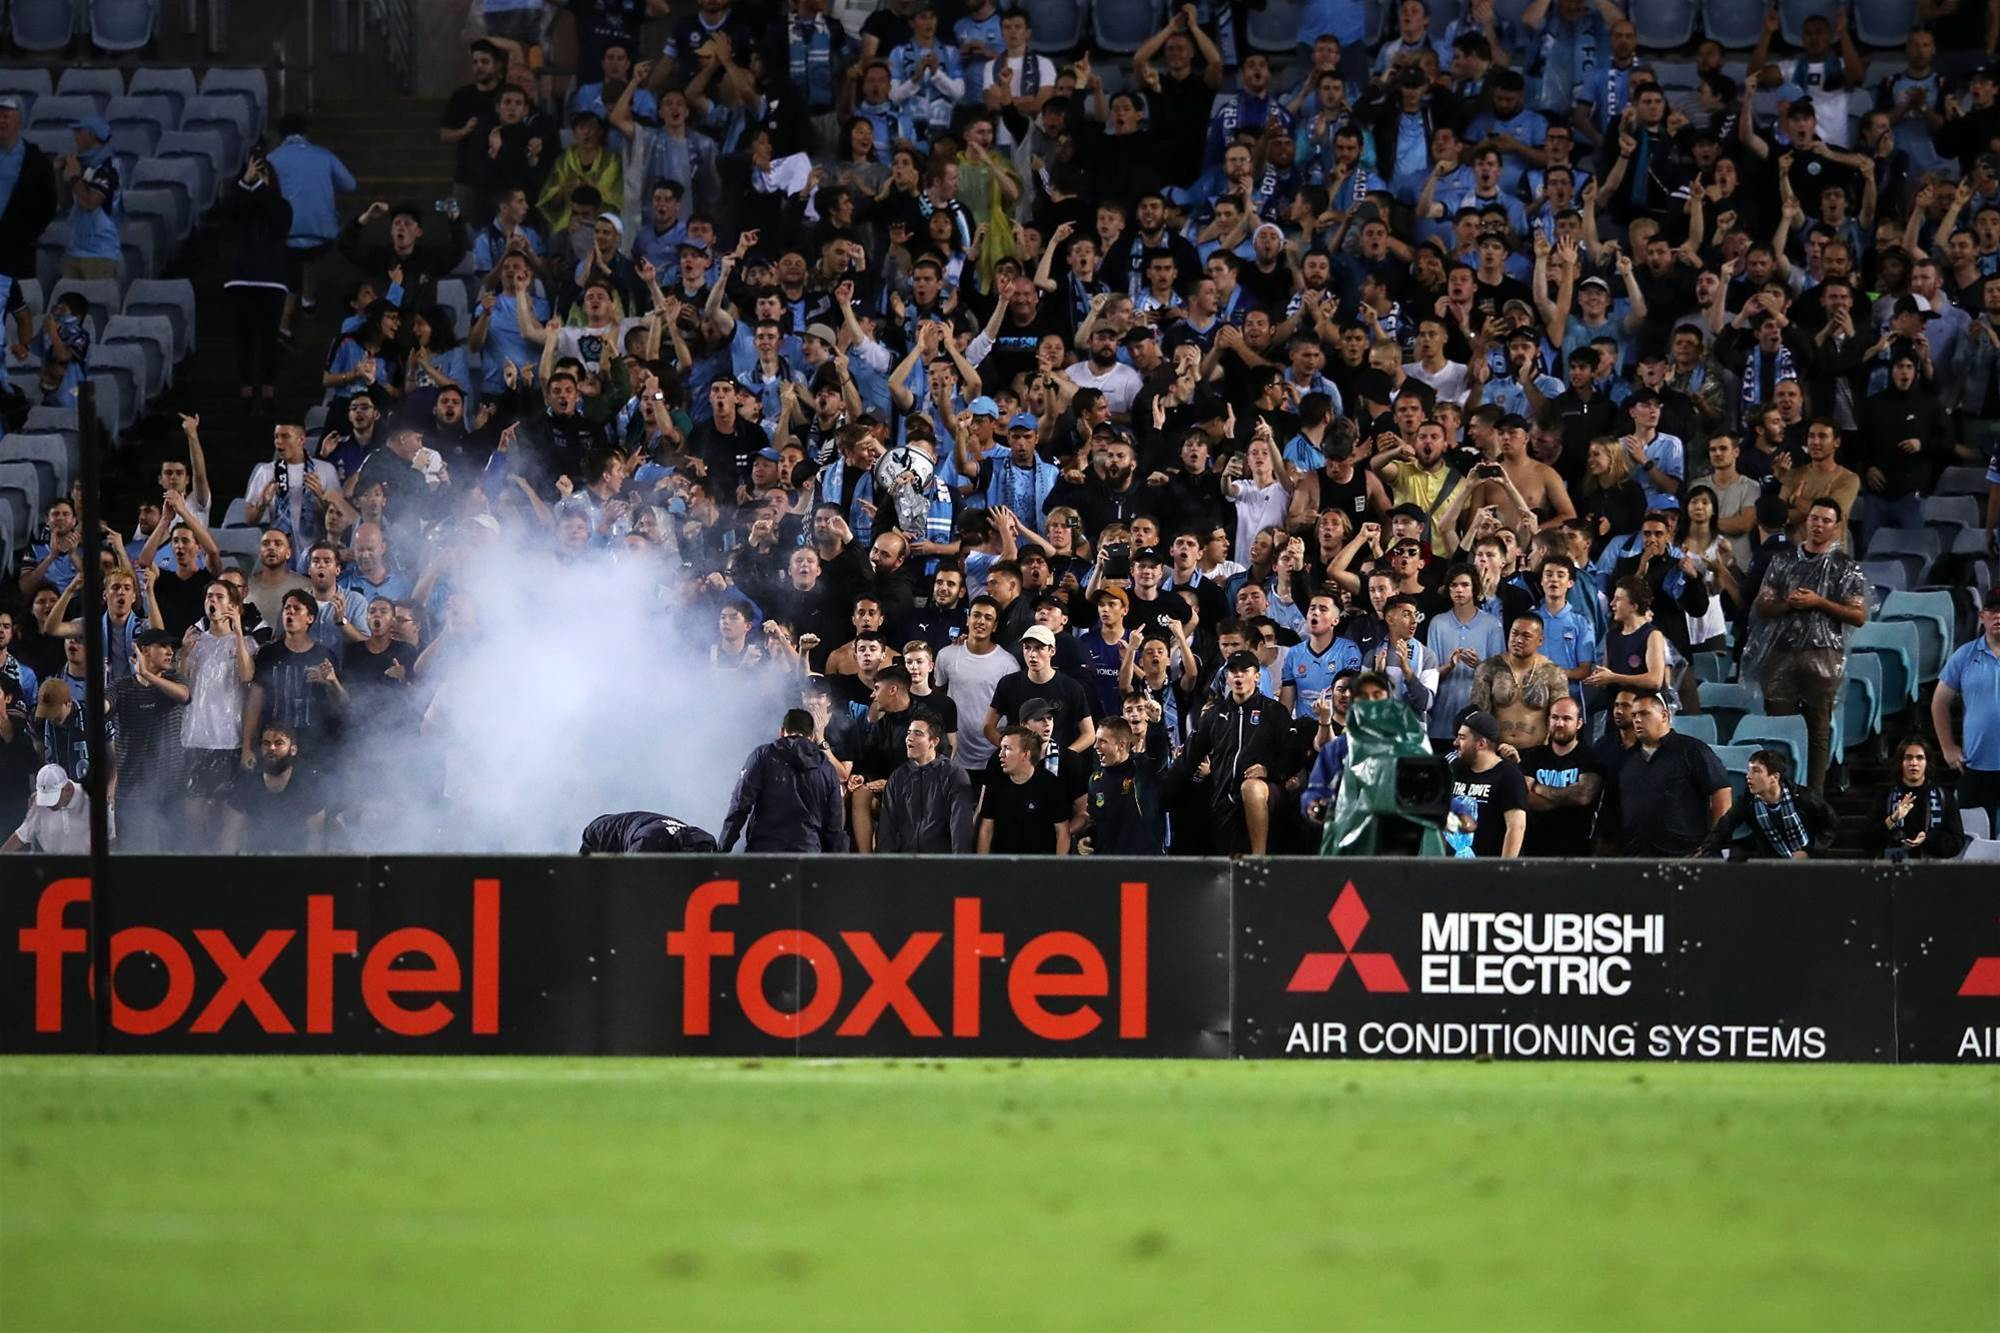 Sydney Derby pic special: When goalkeepers go rogue